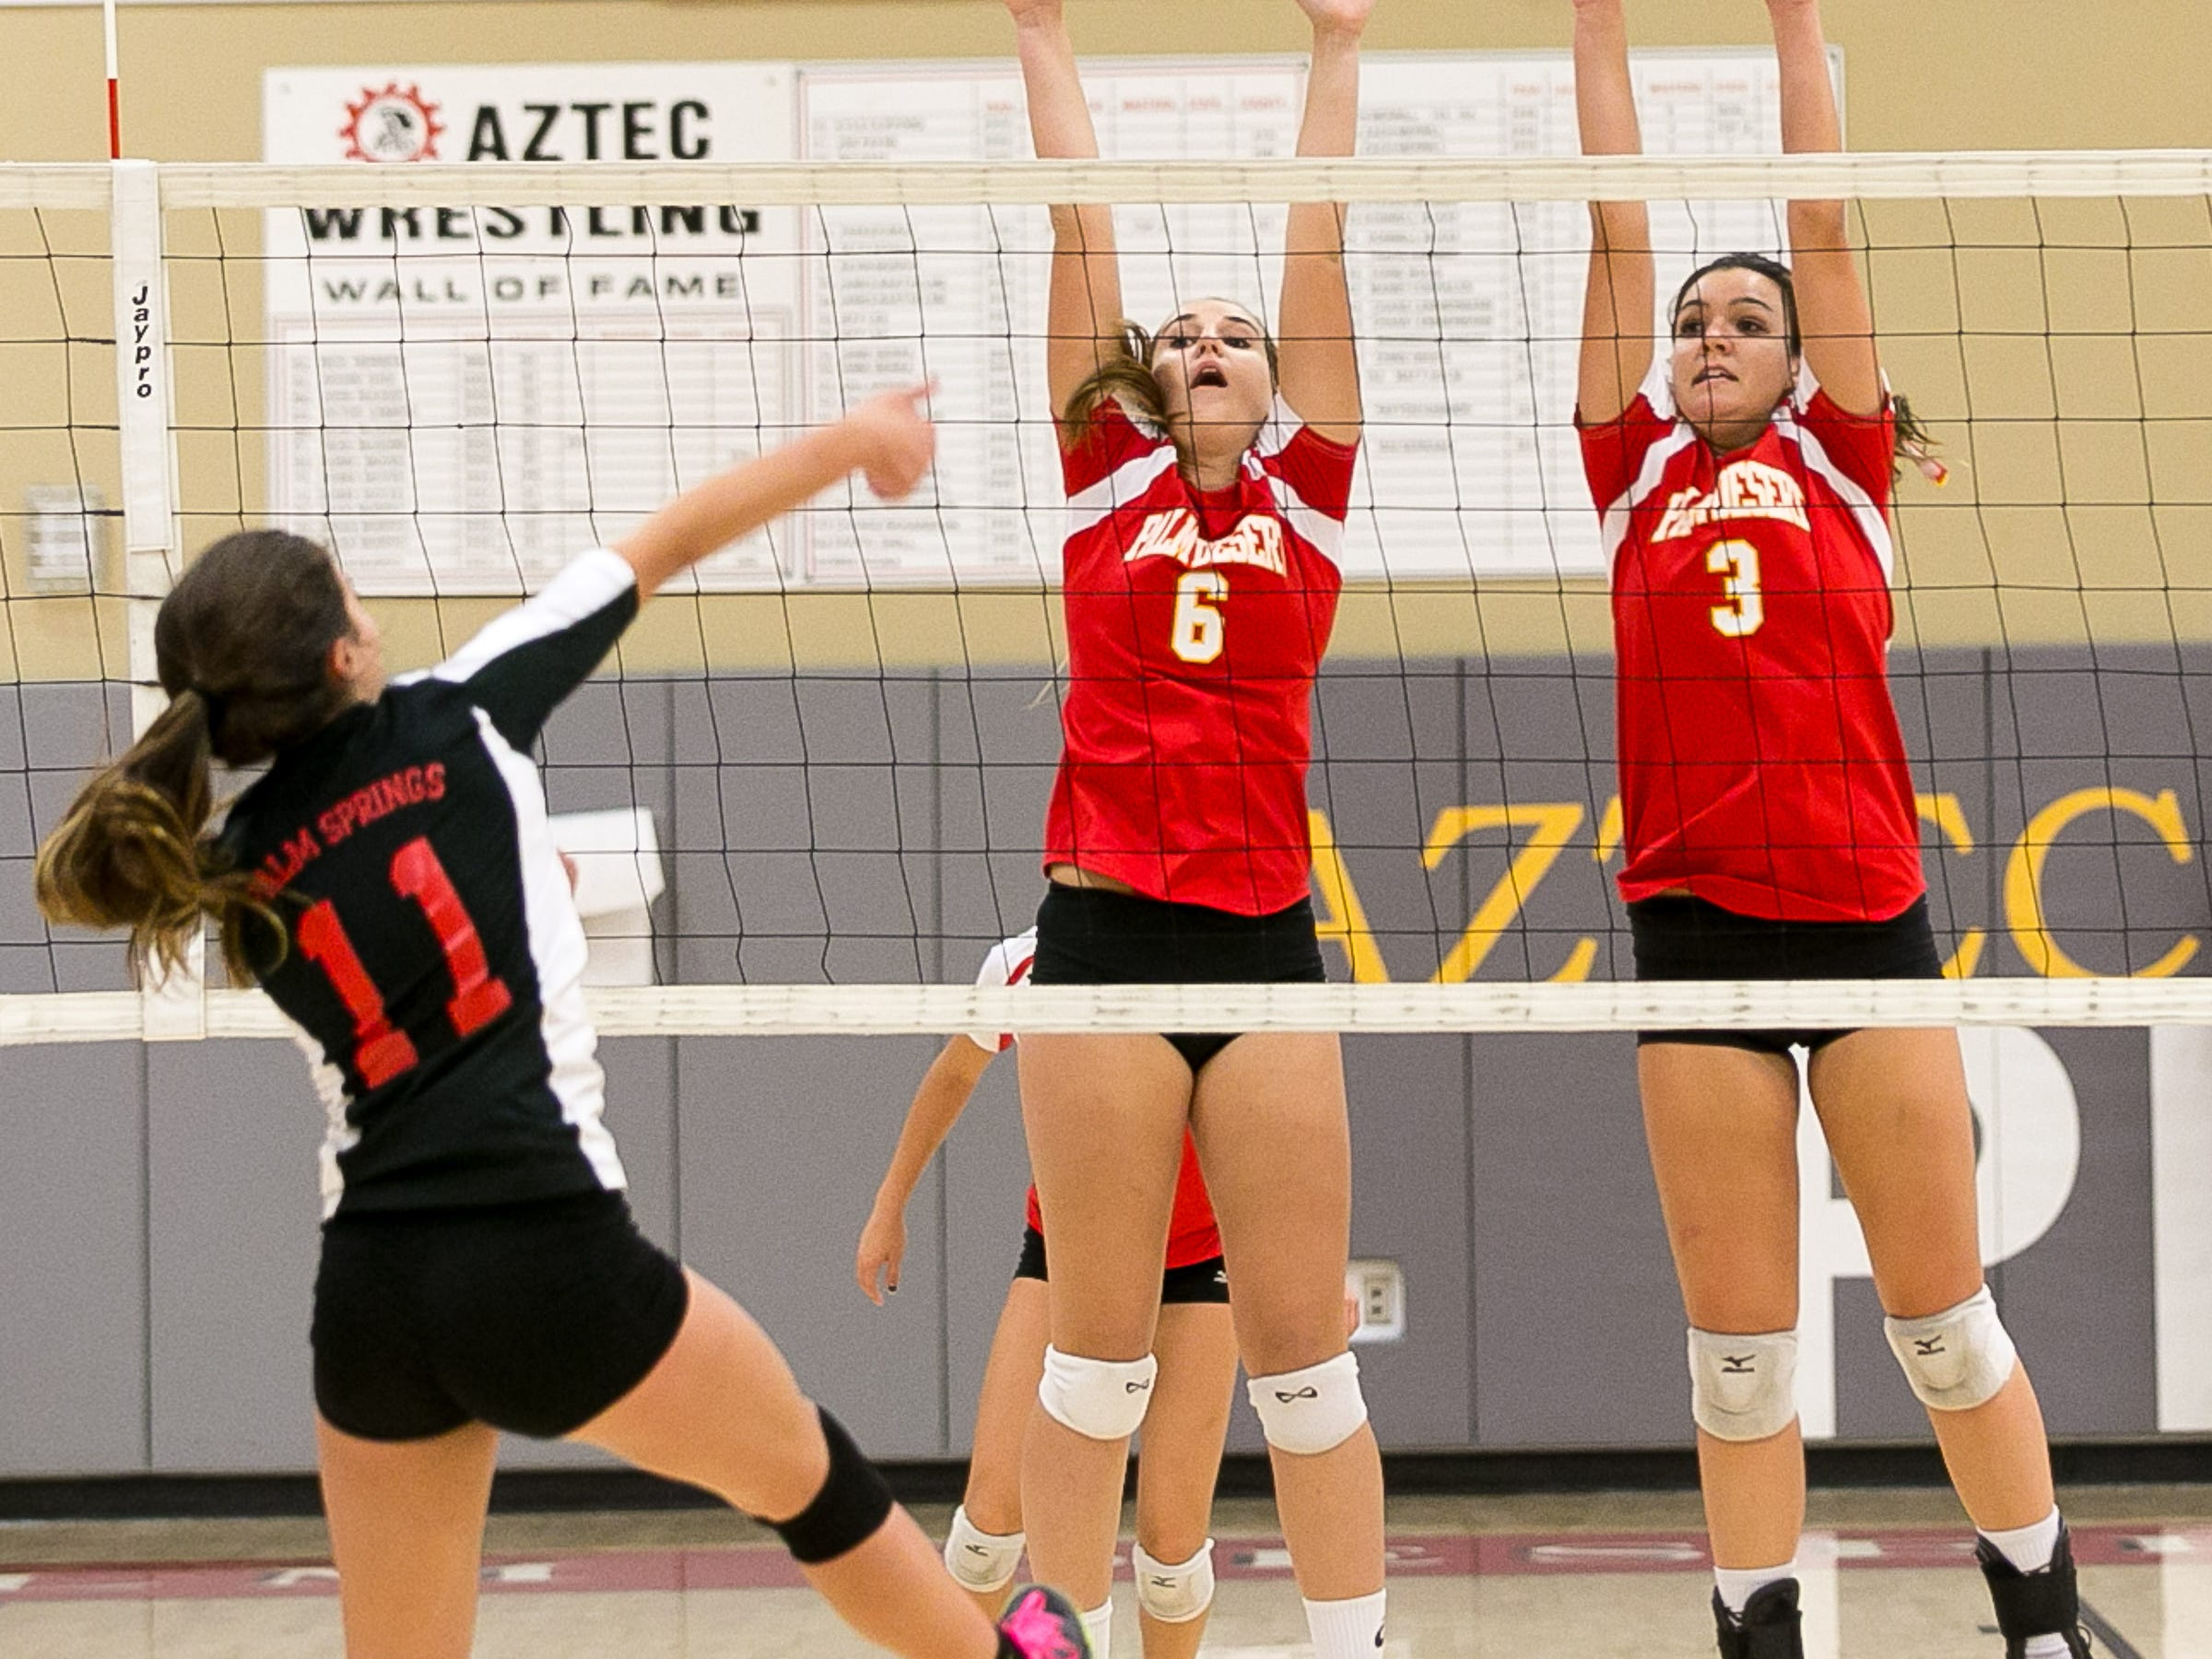 Palm Desert's Hailey Bucklin (No. 6) and Savannah Sharp (No.3) tries to block a shot from Palm Springs' Mary Lake (No. 11) in a DVL volleyball game held at Palm Desert High School Thursday evening, October 16, 2014. Photo by Gerry Maceda, Special to The Desert Sun